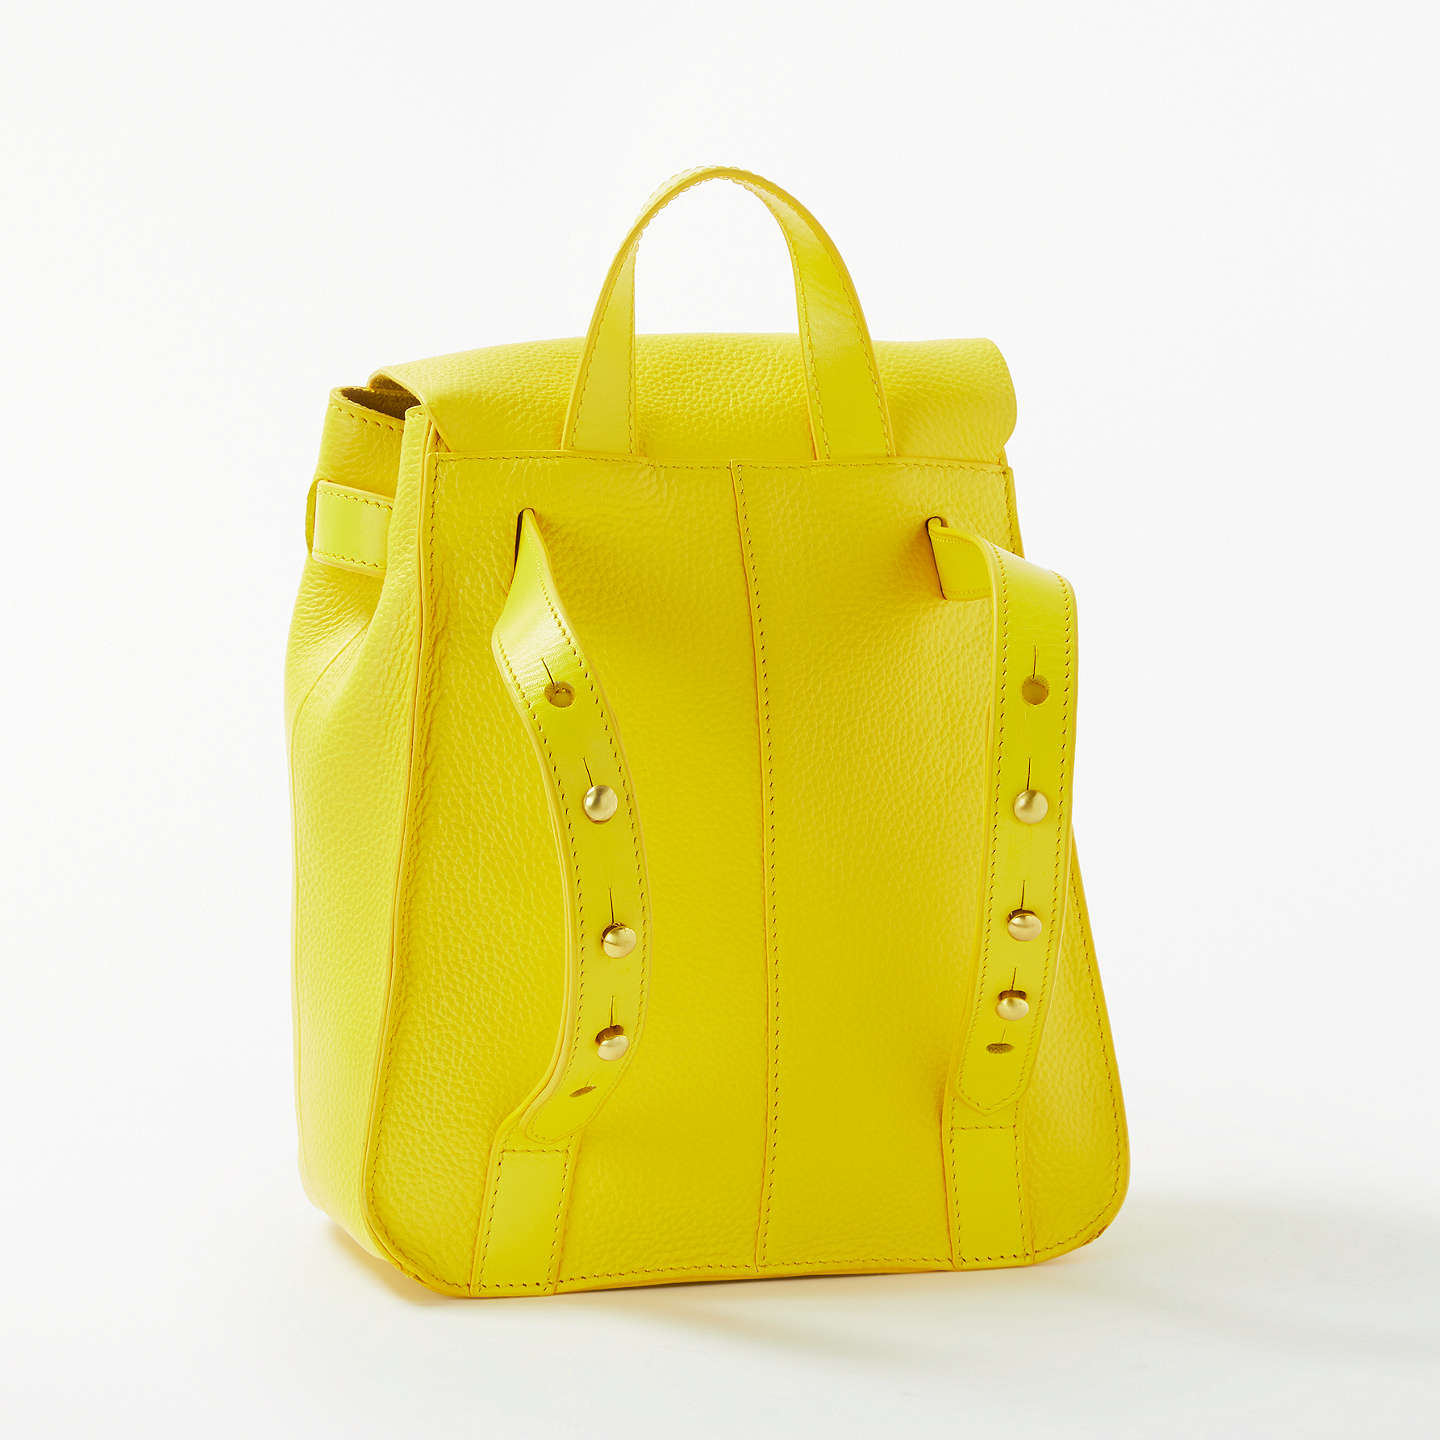 BuyJohn Lewis Rhea Leather Mini Backpack, Yellow Online at johnlewis.com